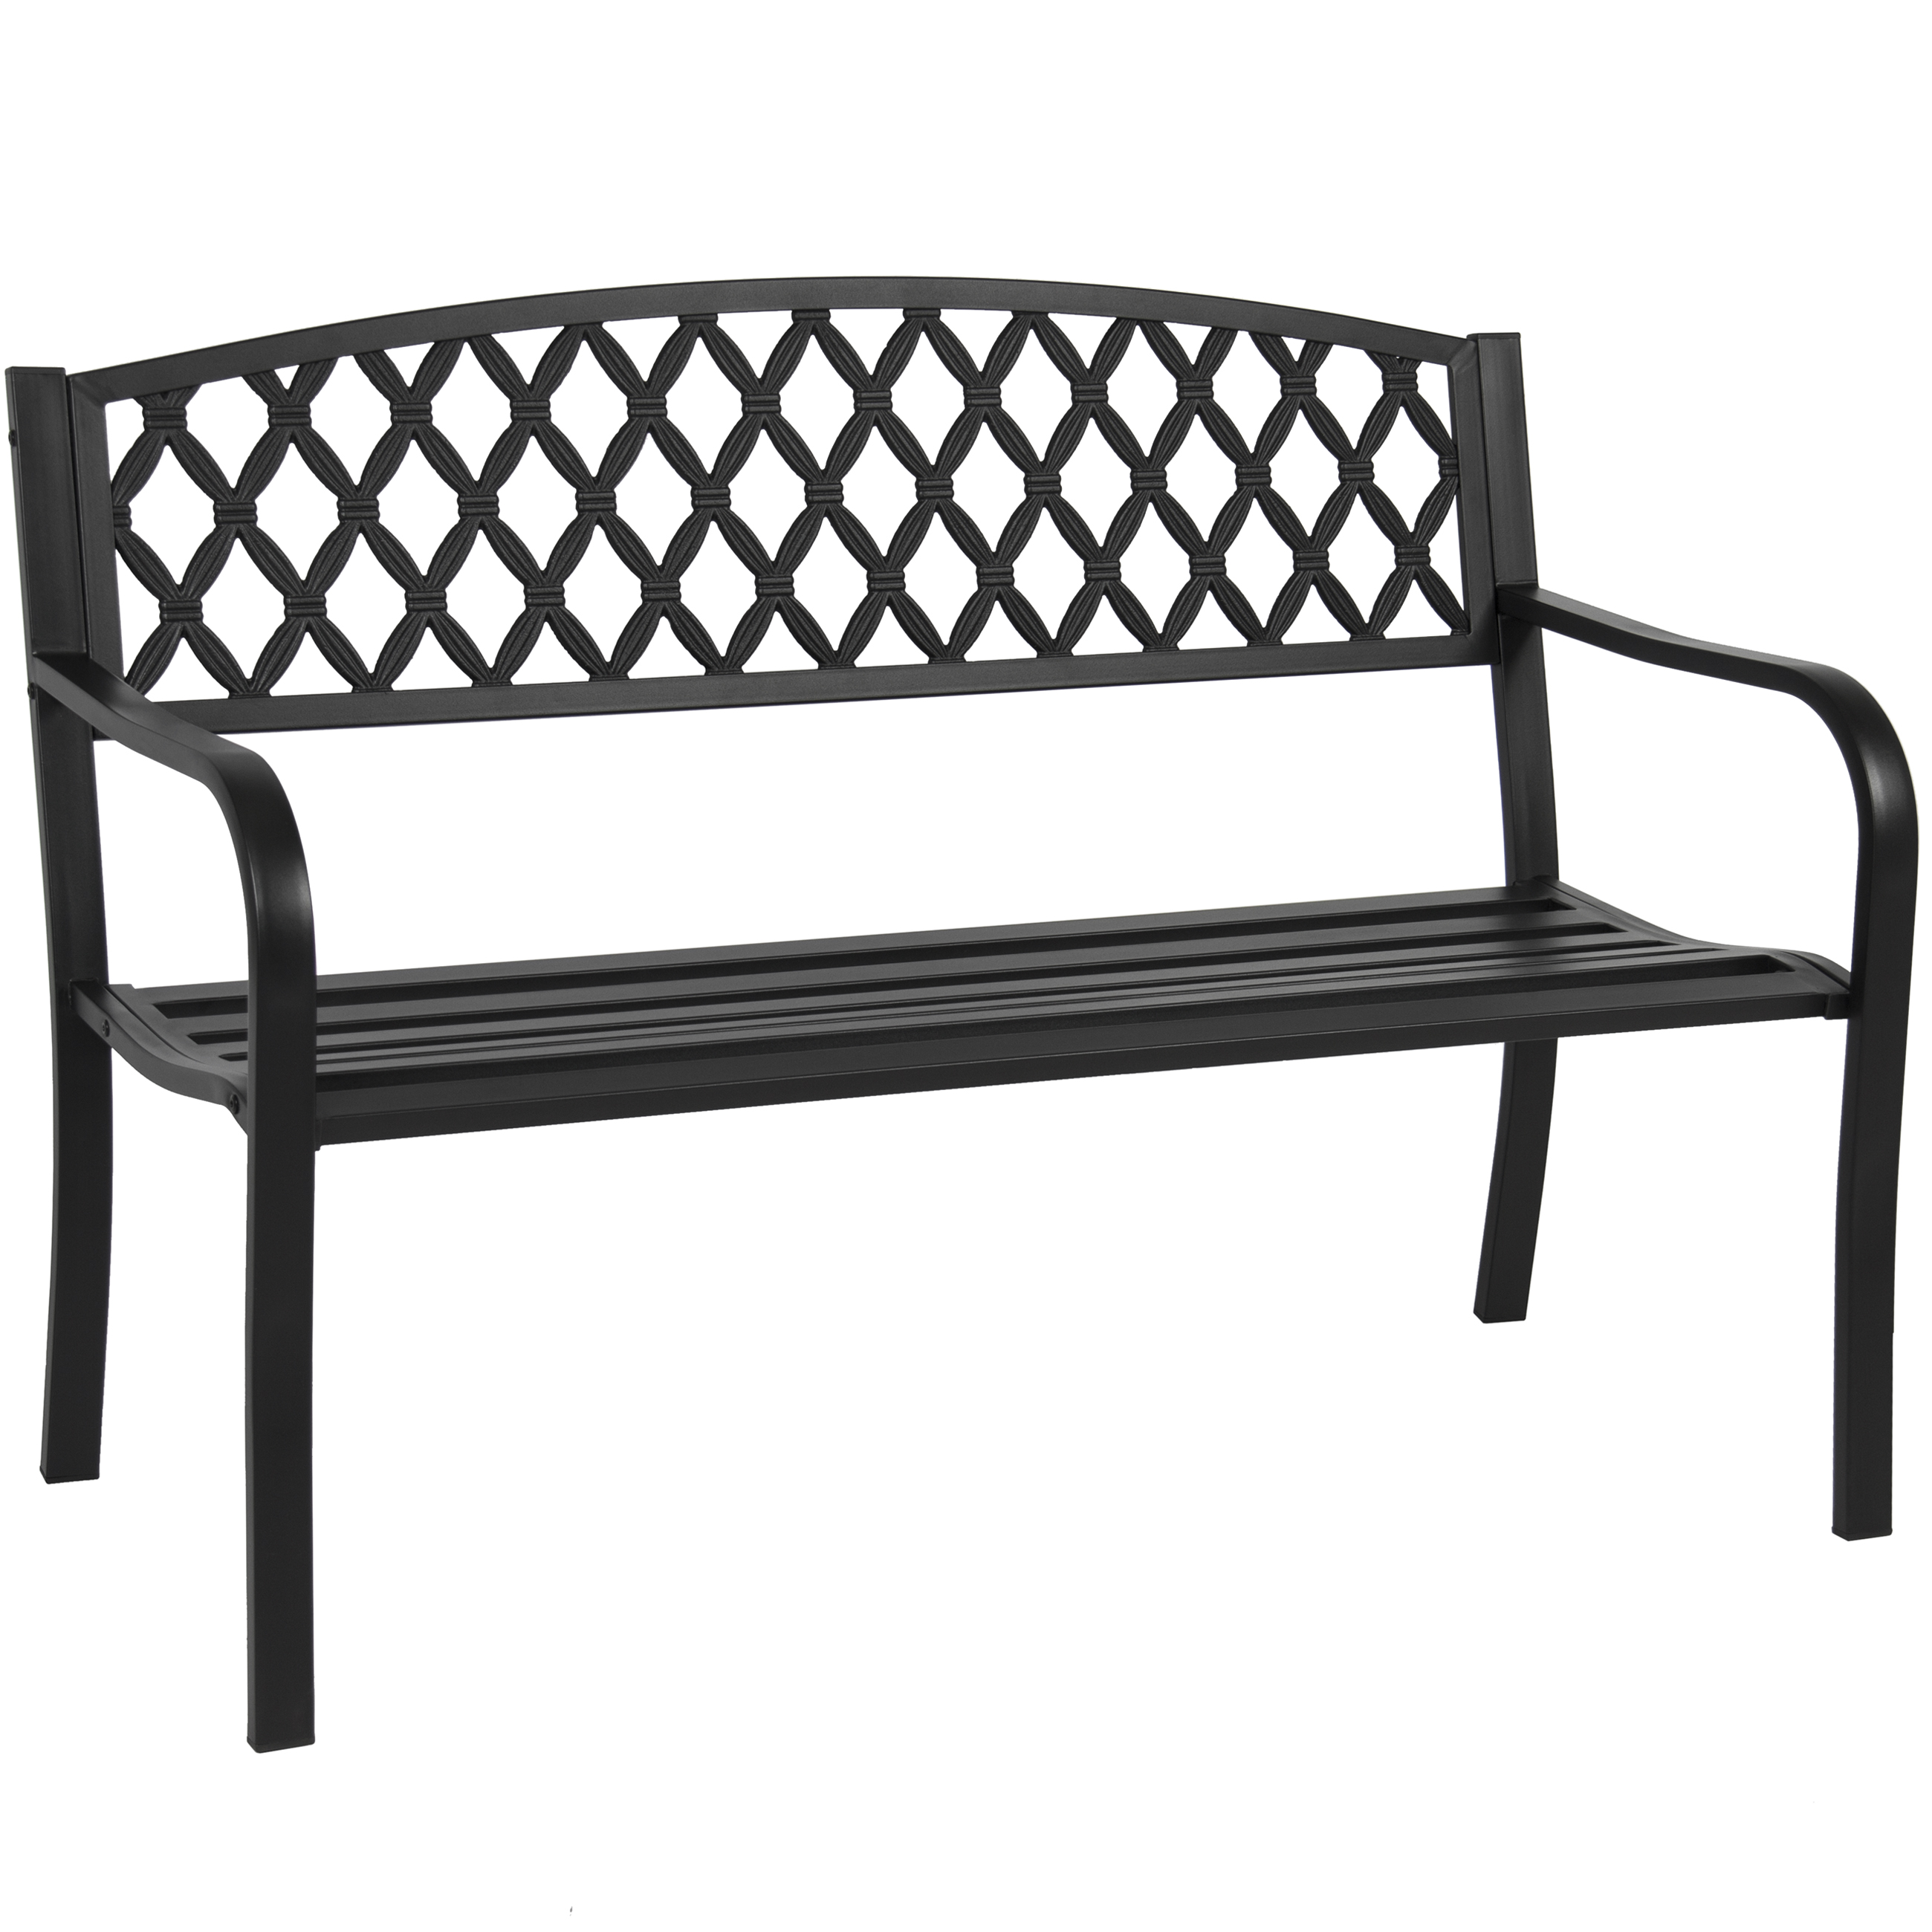 rose red steel patio garden park bench outdoor living patio furniture walmartcom - Garden Furniture Steel